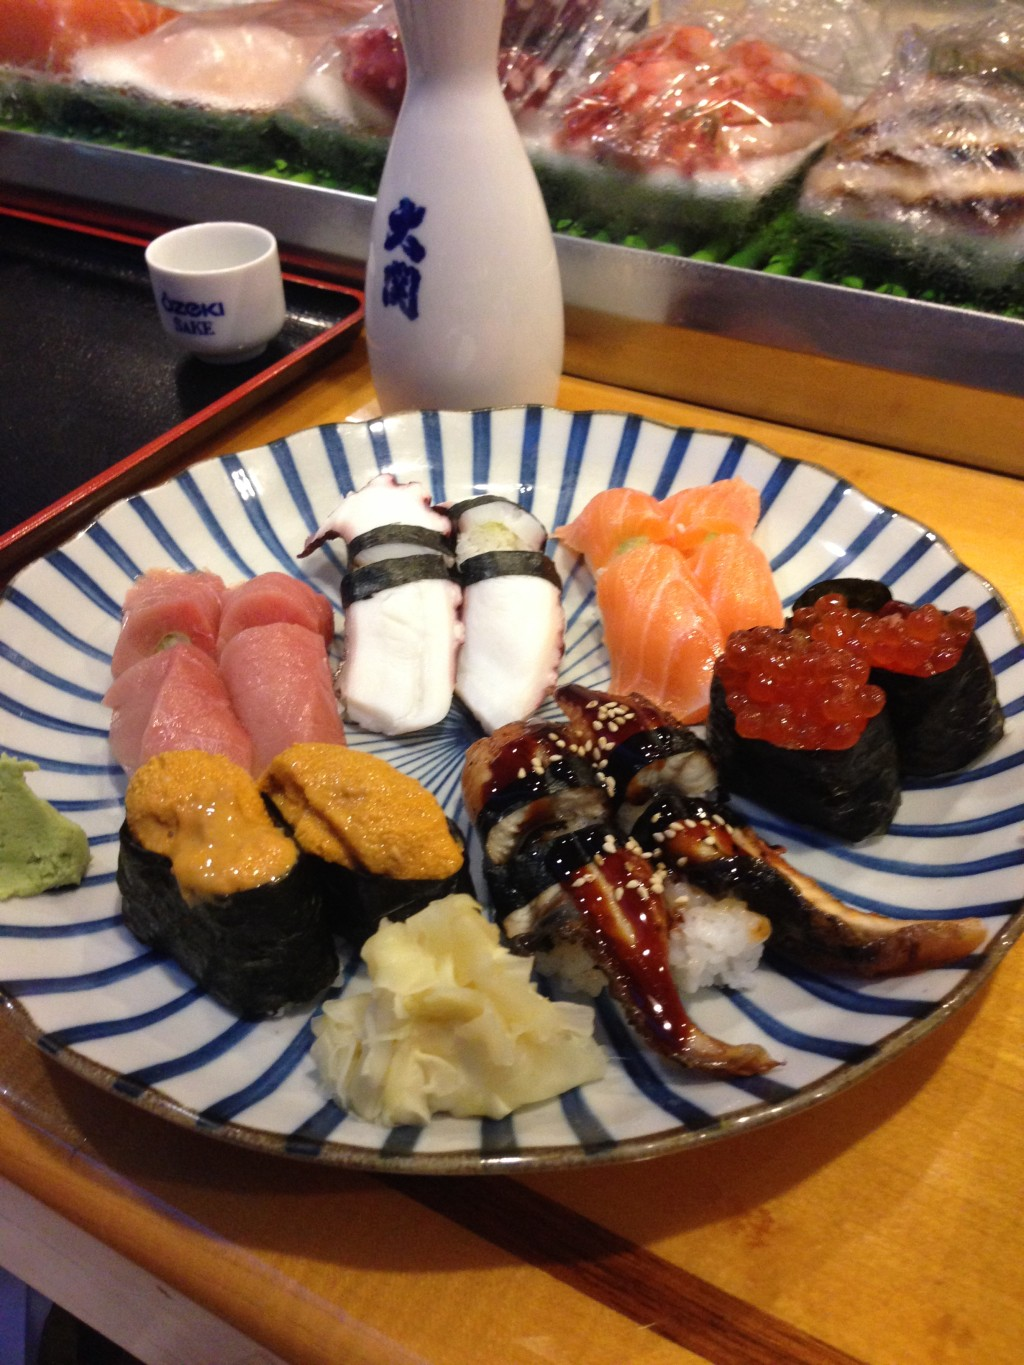 Nigiri sushi at Horinoya include everything from fatty tuna belly to sea urchin and salmon roe.